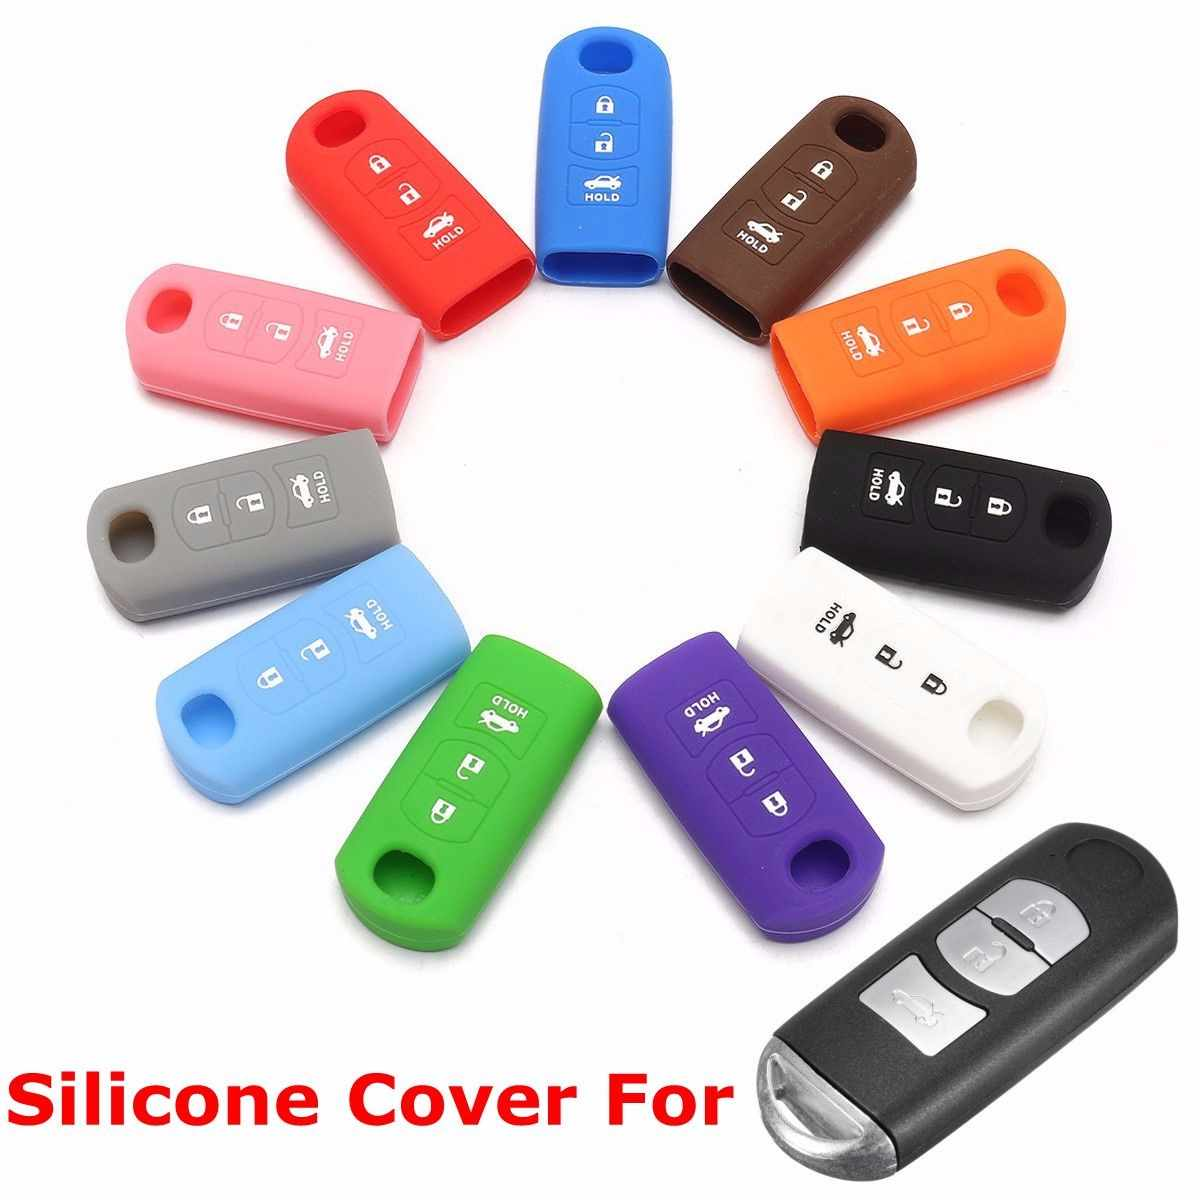 2 3 Buttons Key FOB Remote Car Key Case Shell Cover Holder For MAZDA 3 6 CX-5 CX-7